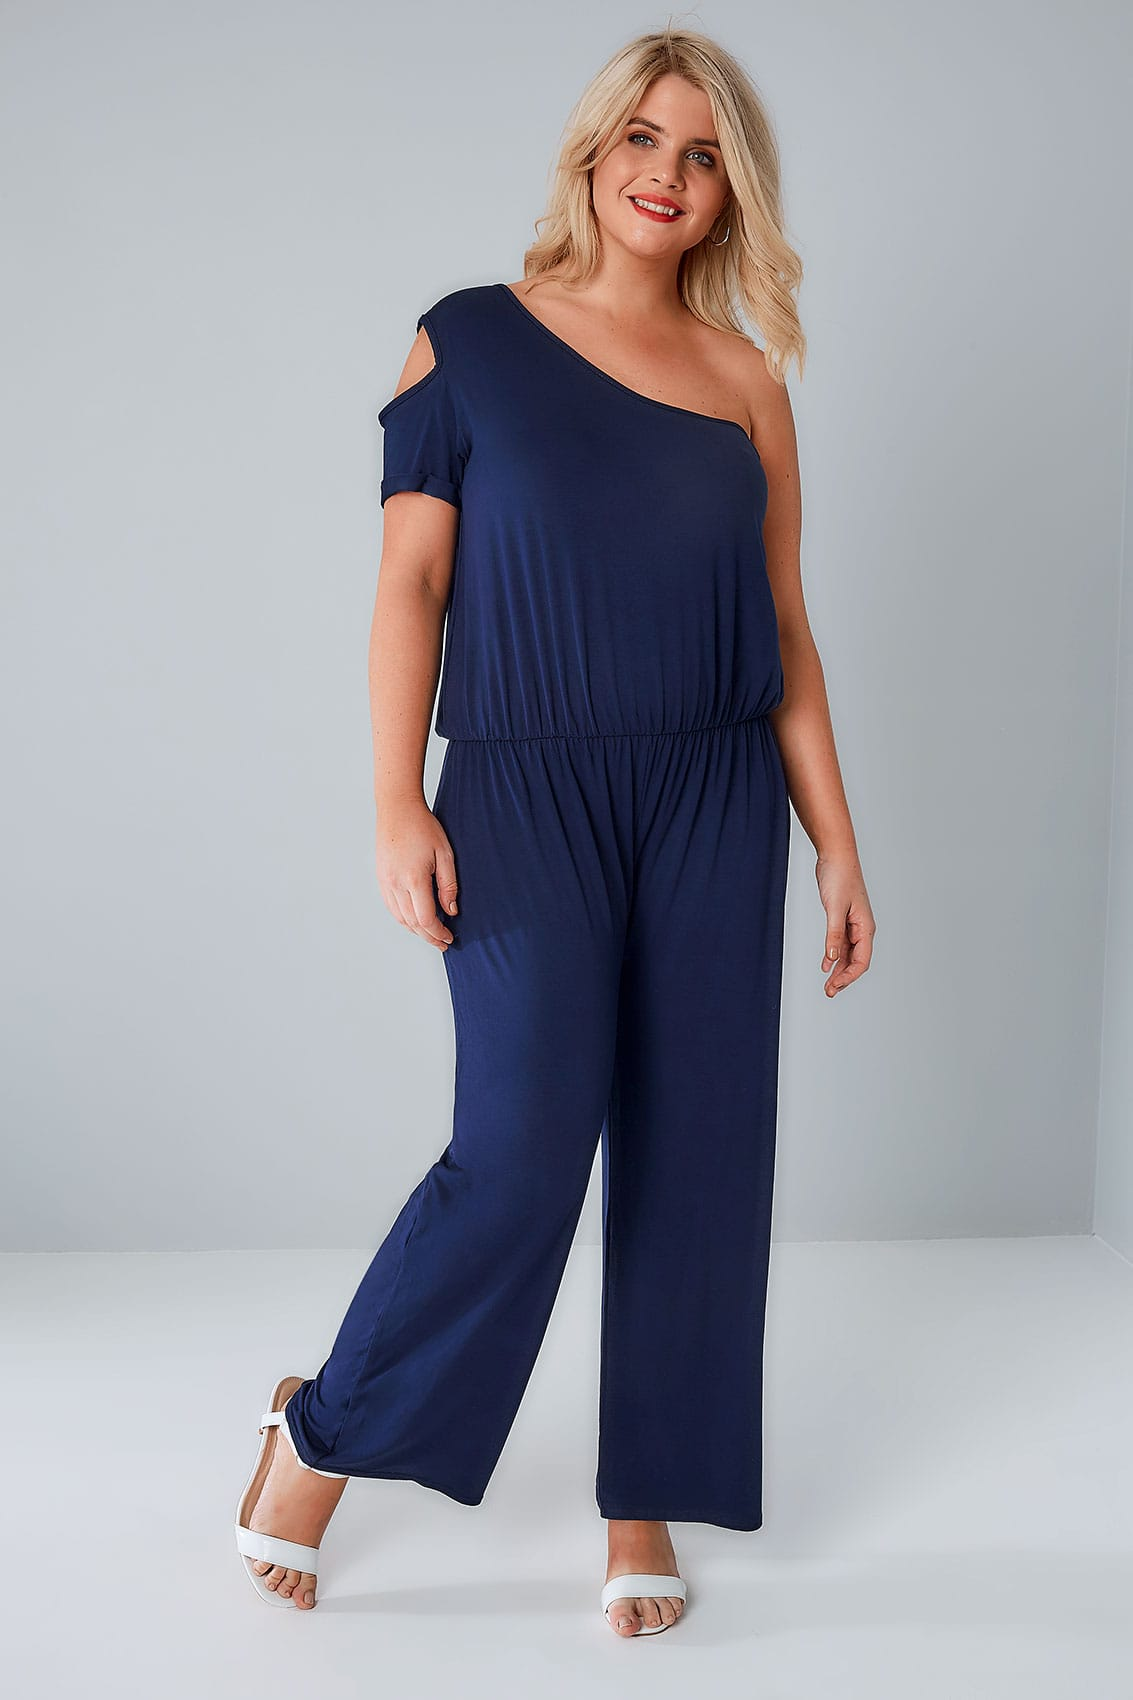 LIMITED COLLECTION Navy One Shoulder Jumpsuit, Plus size ...